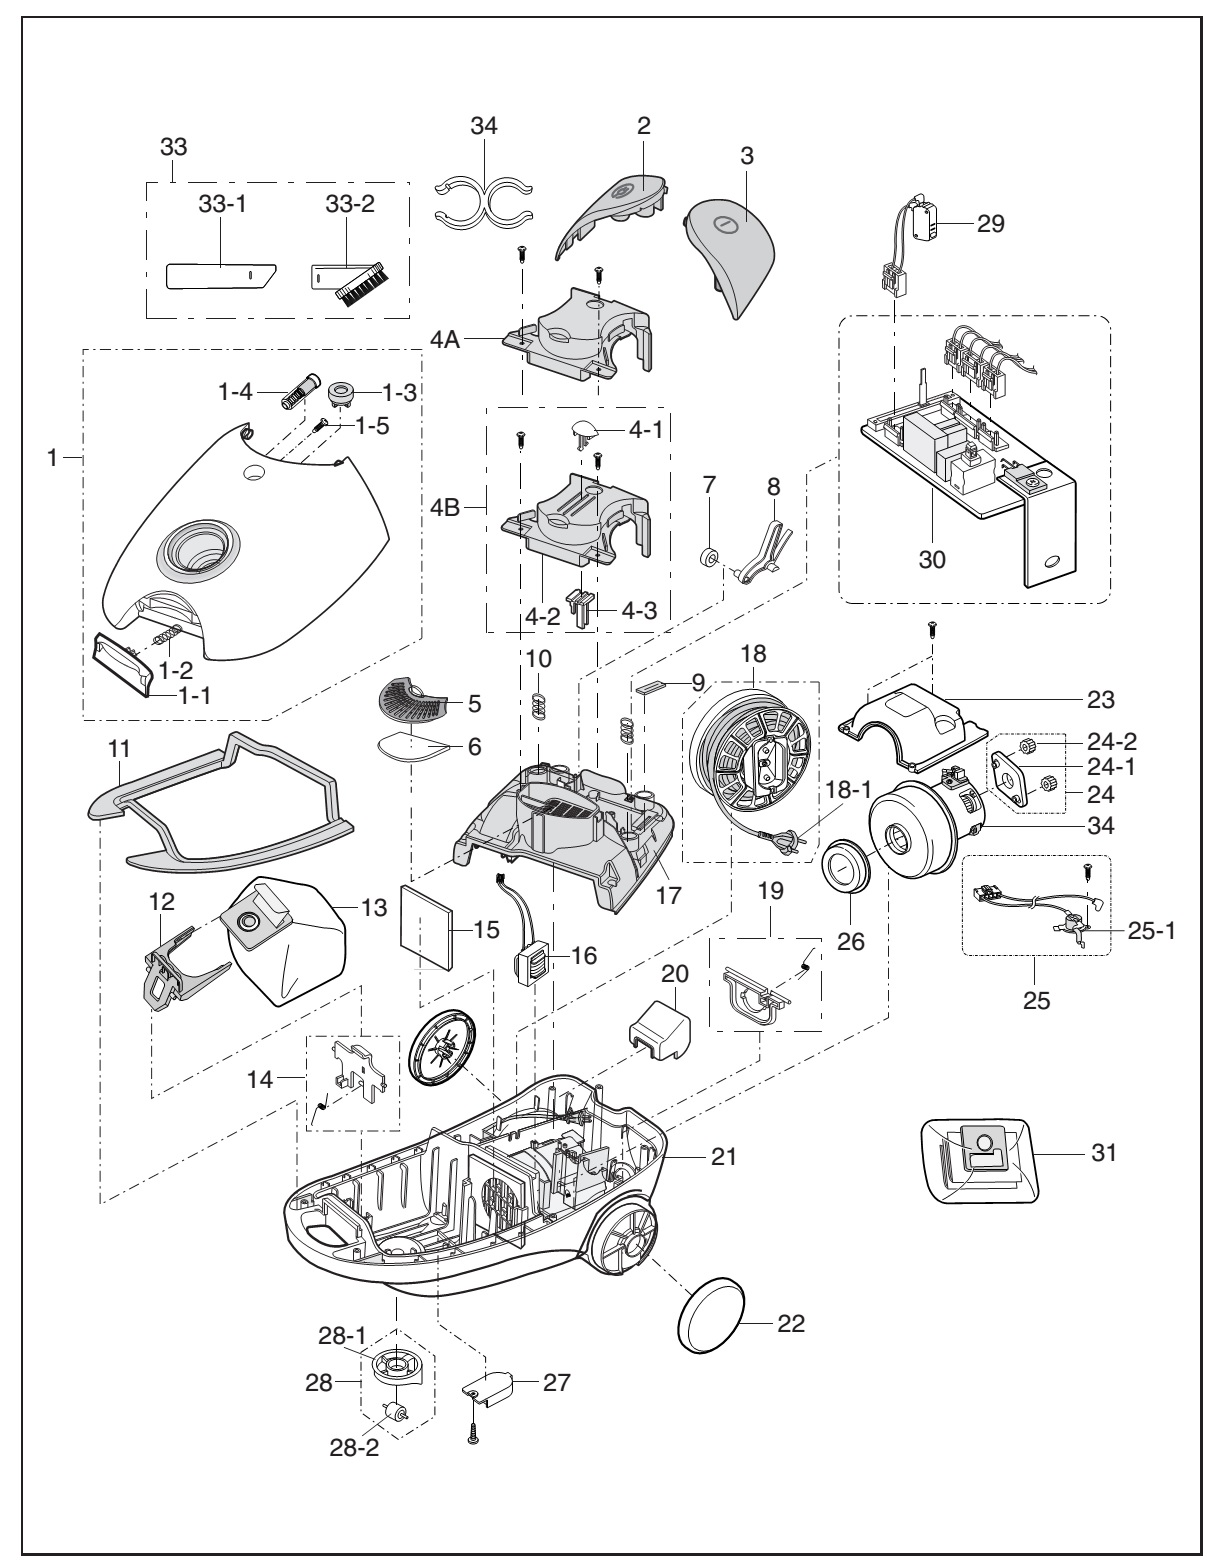 how to disassemble samsung vc 6025 vacuum cleaner - exploded view